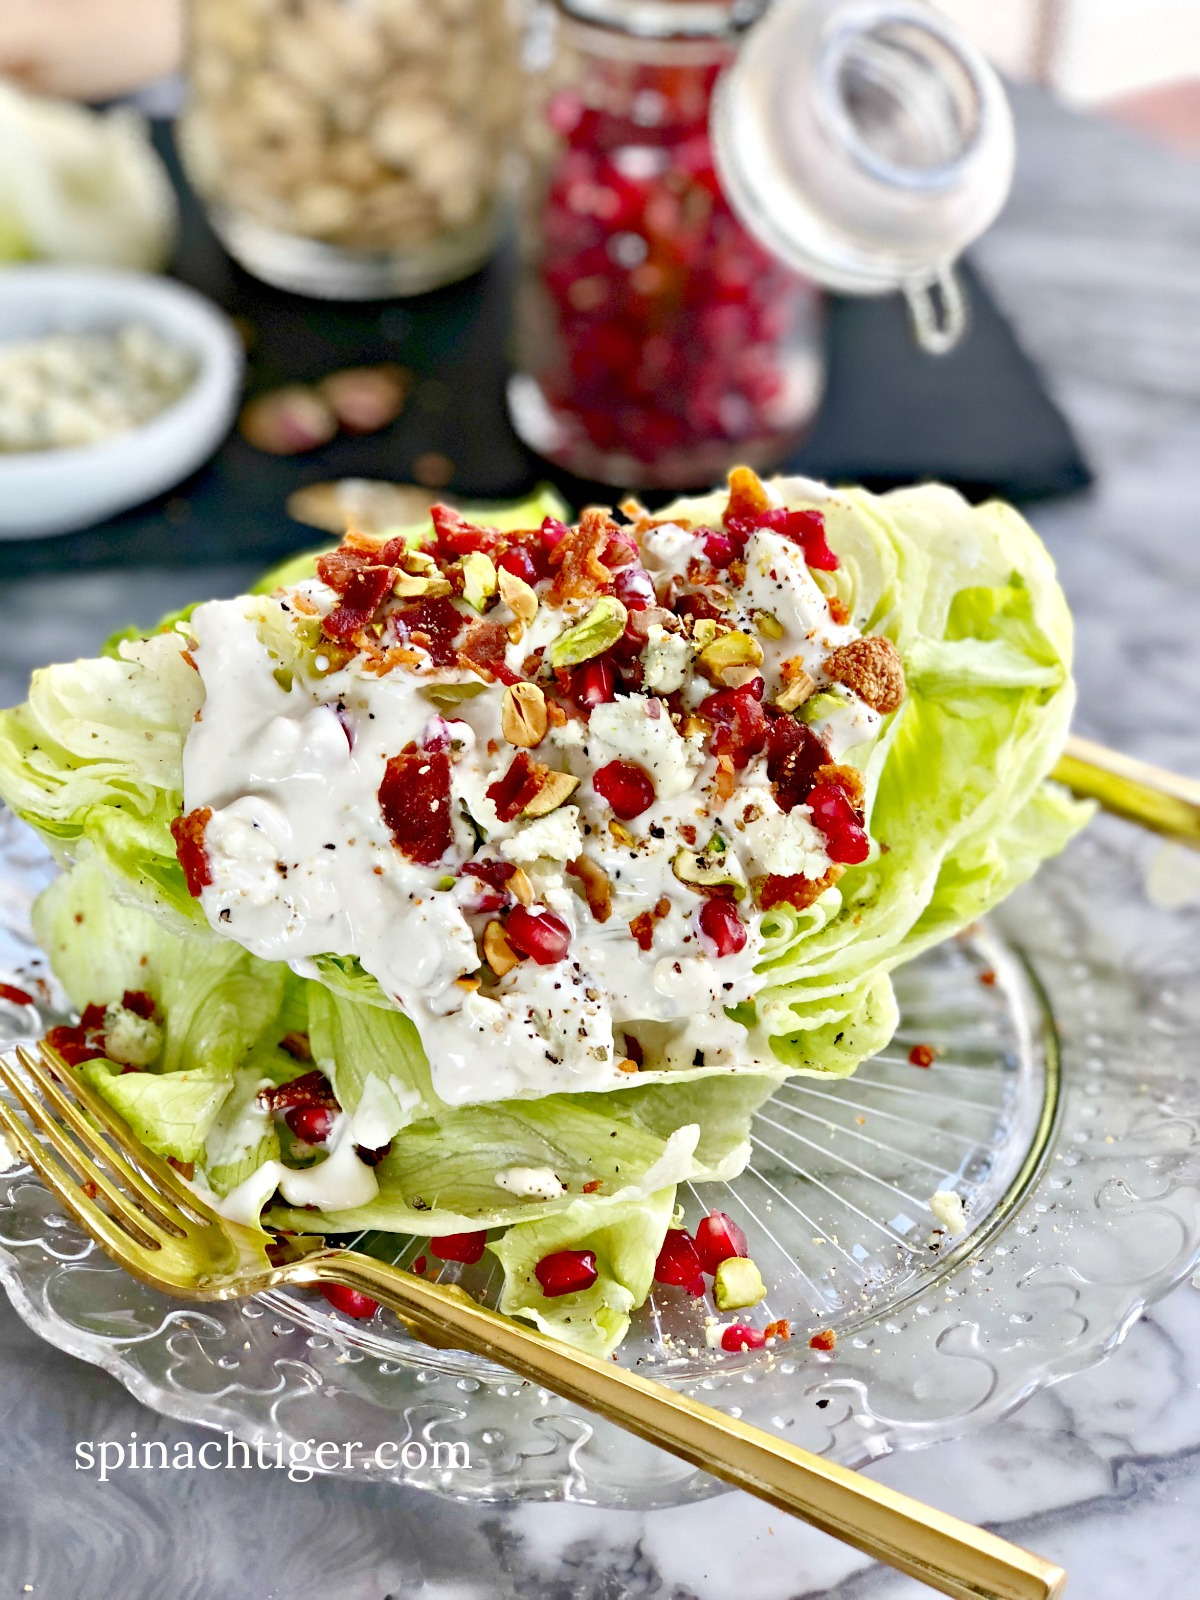 Wedge Salad with blue cheese dressing from Spinach Tiger